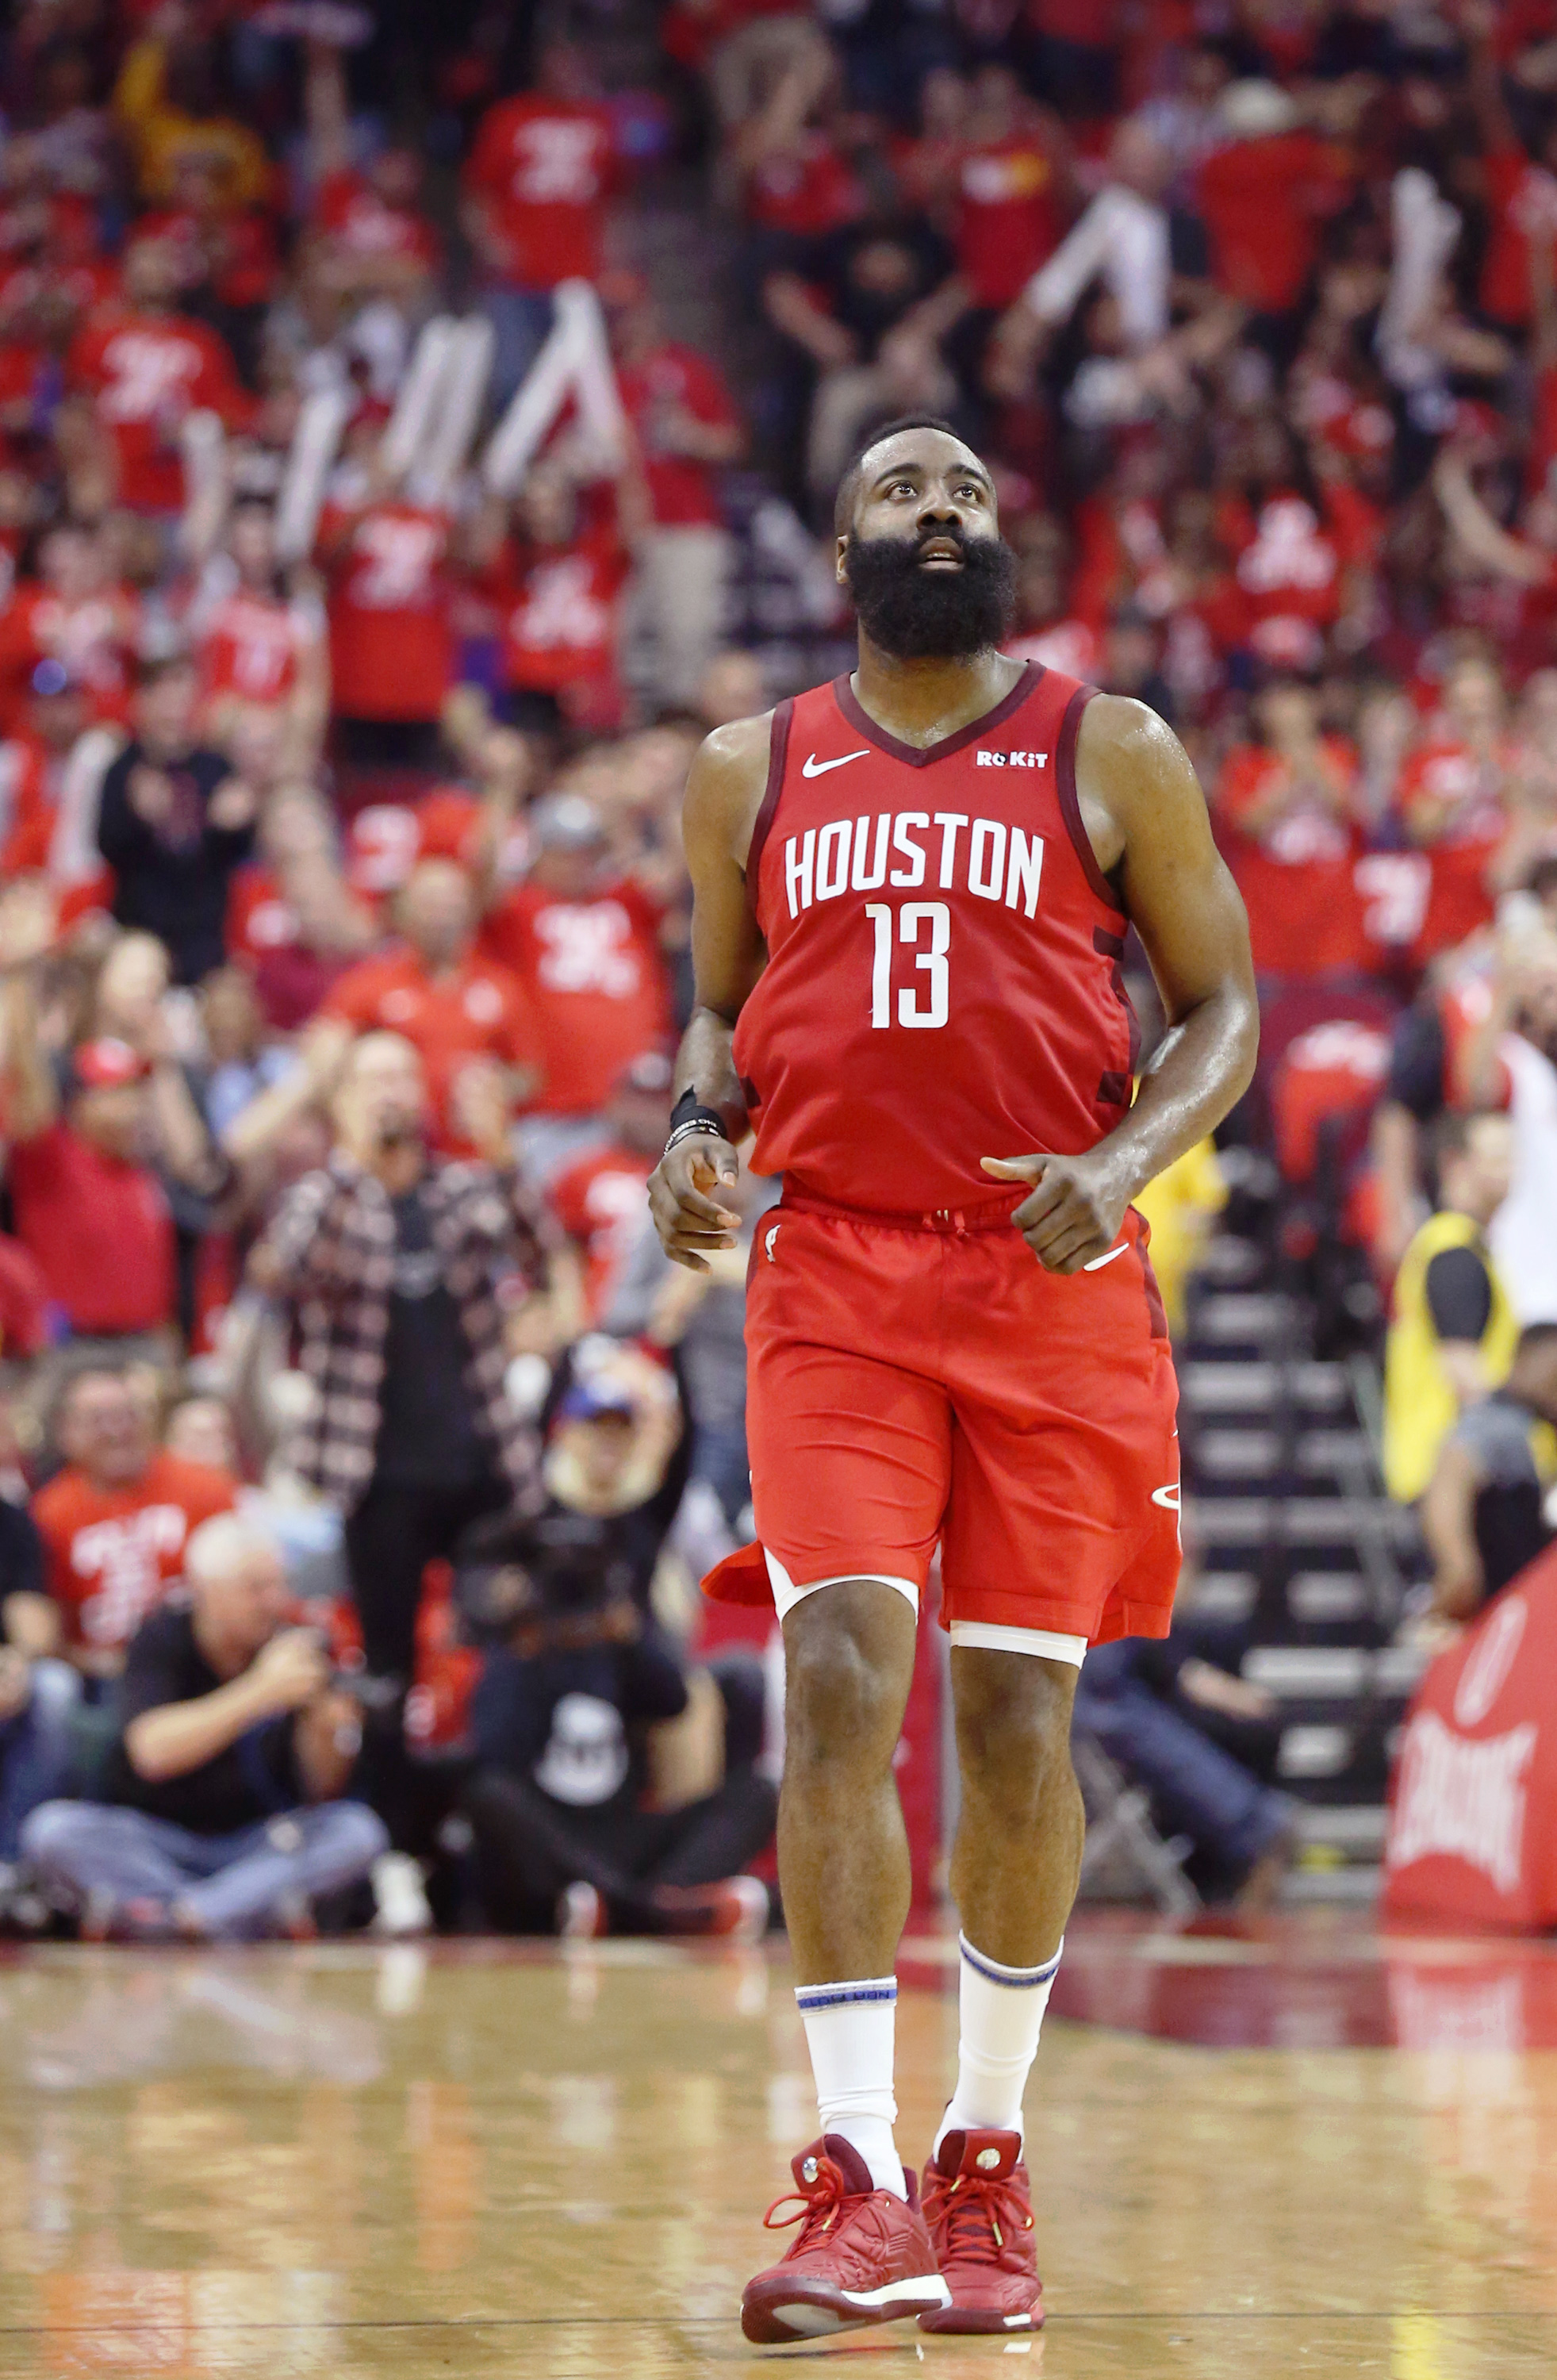 Be afraid, Warriors. The Rockets may be even better than they were last year